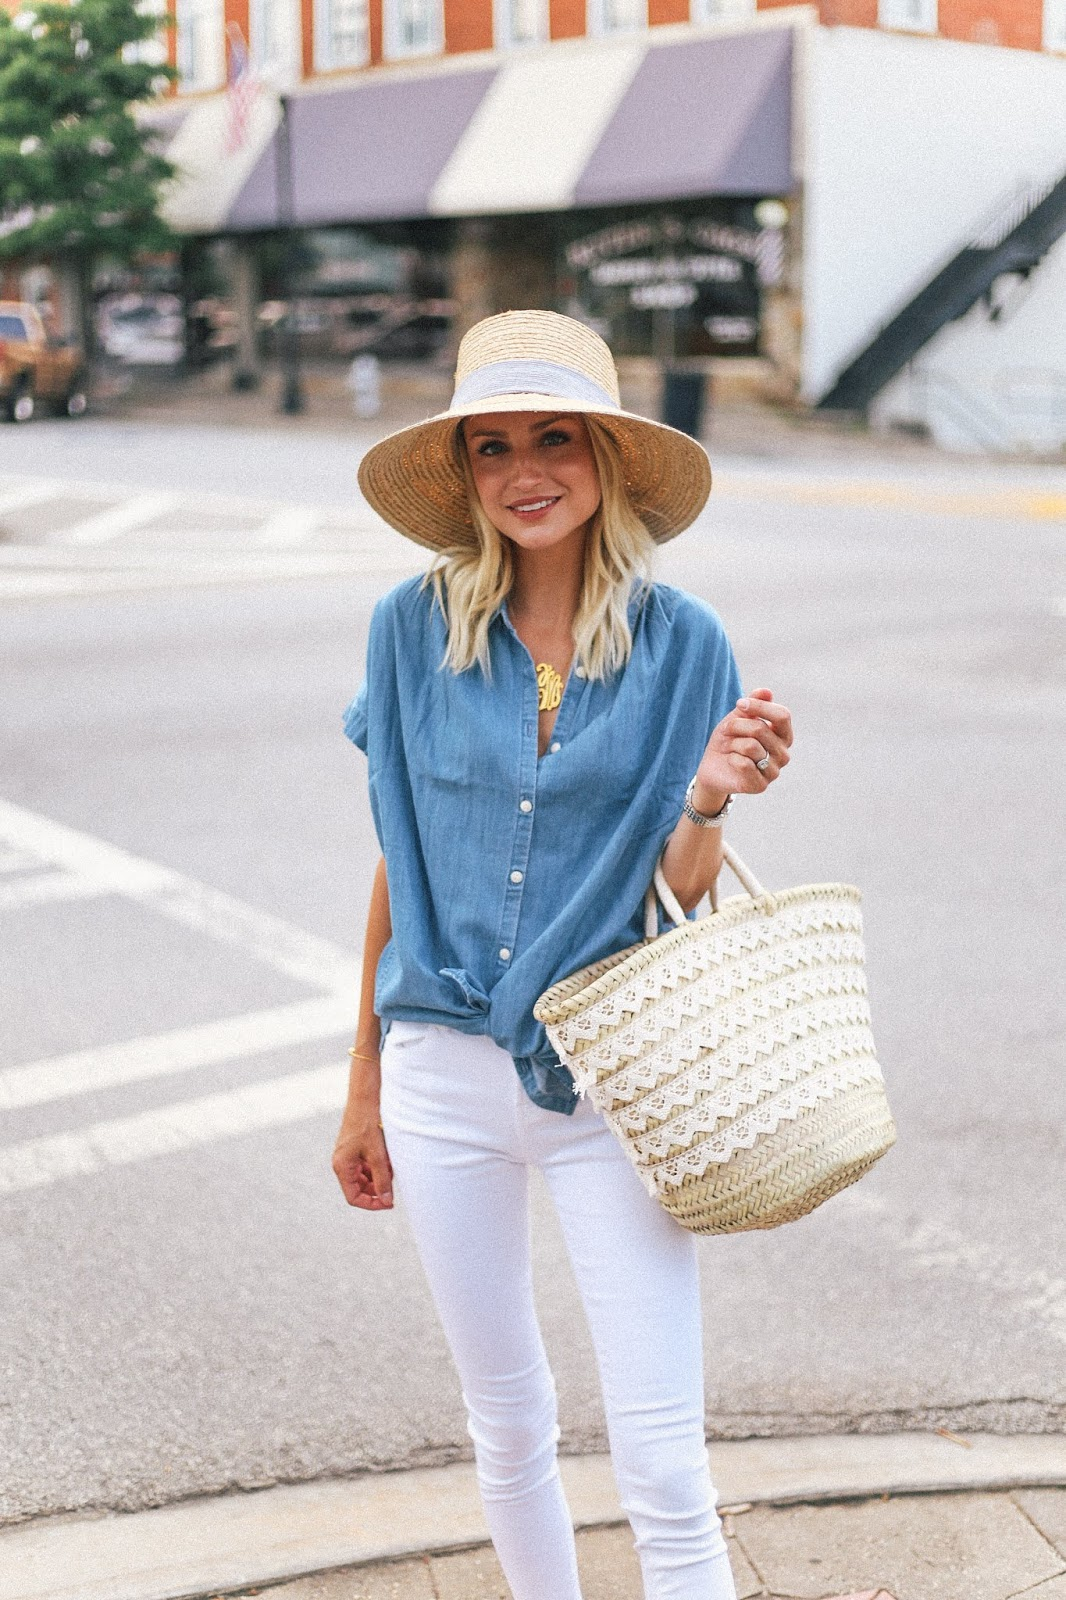 d0c9dc42acc7e Cohesive Summer Wardrobe You Can Mix and Match